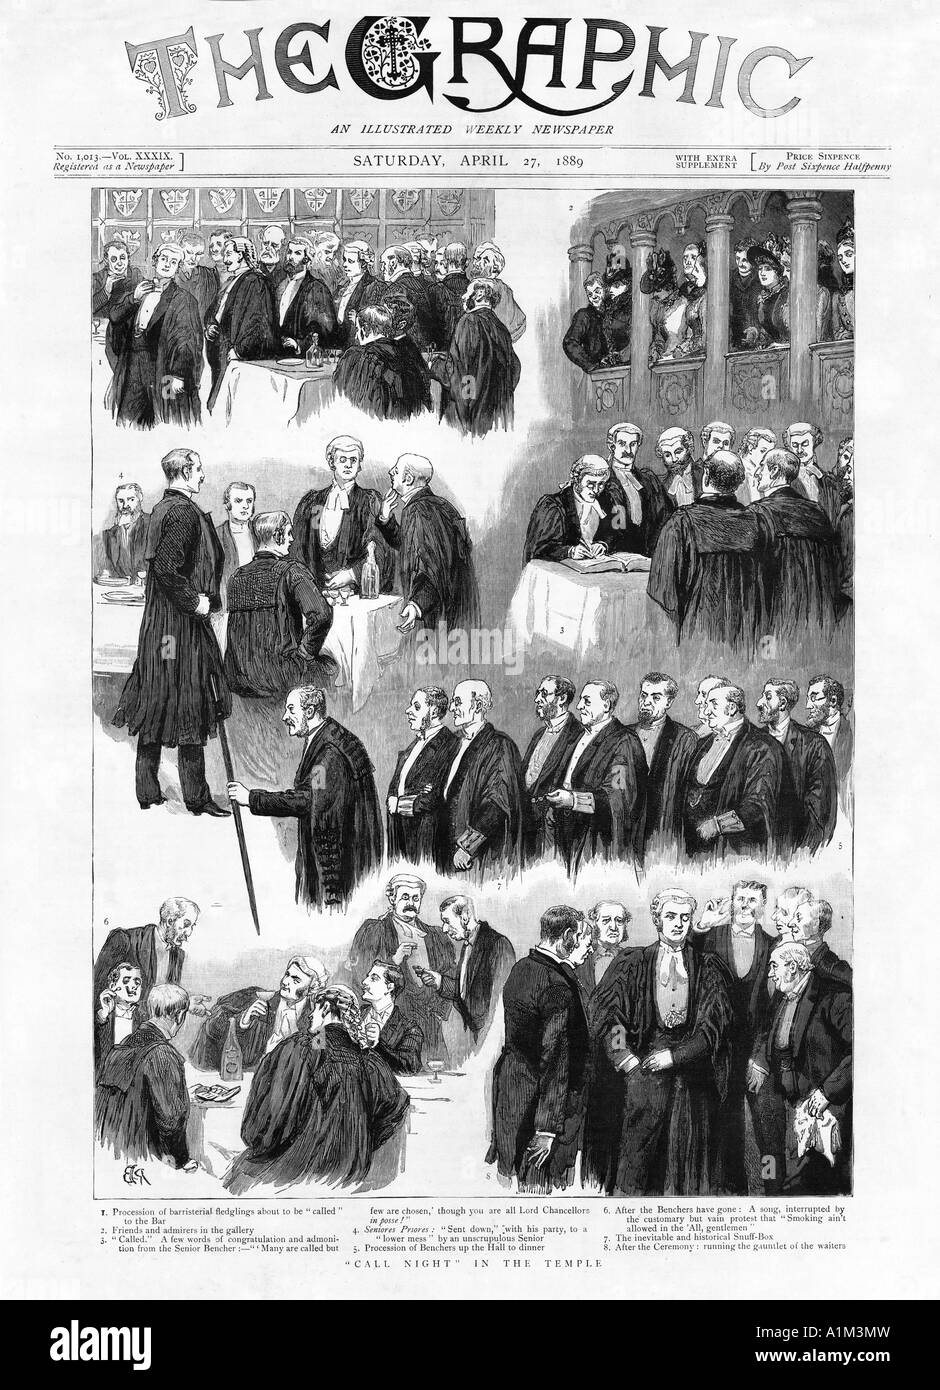 Call Night At The Temple 1889 magazine illustration of the ceremony where the barristerial fledglings called to - Stock Image